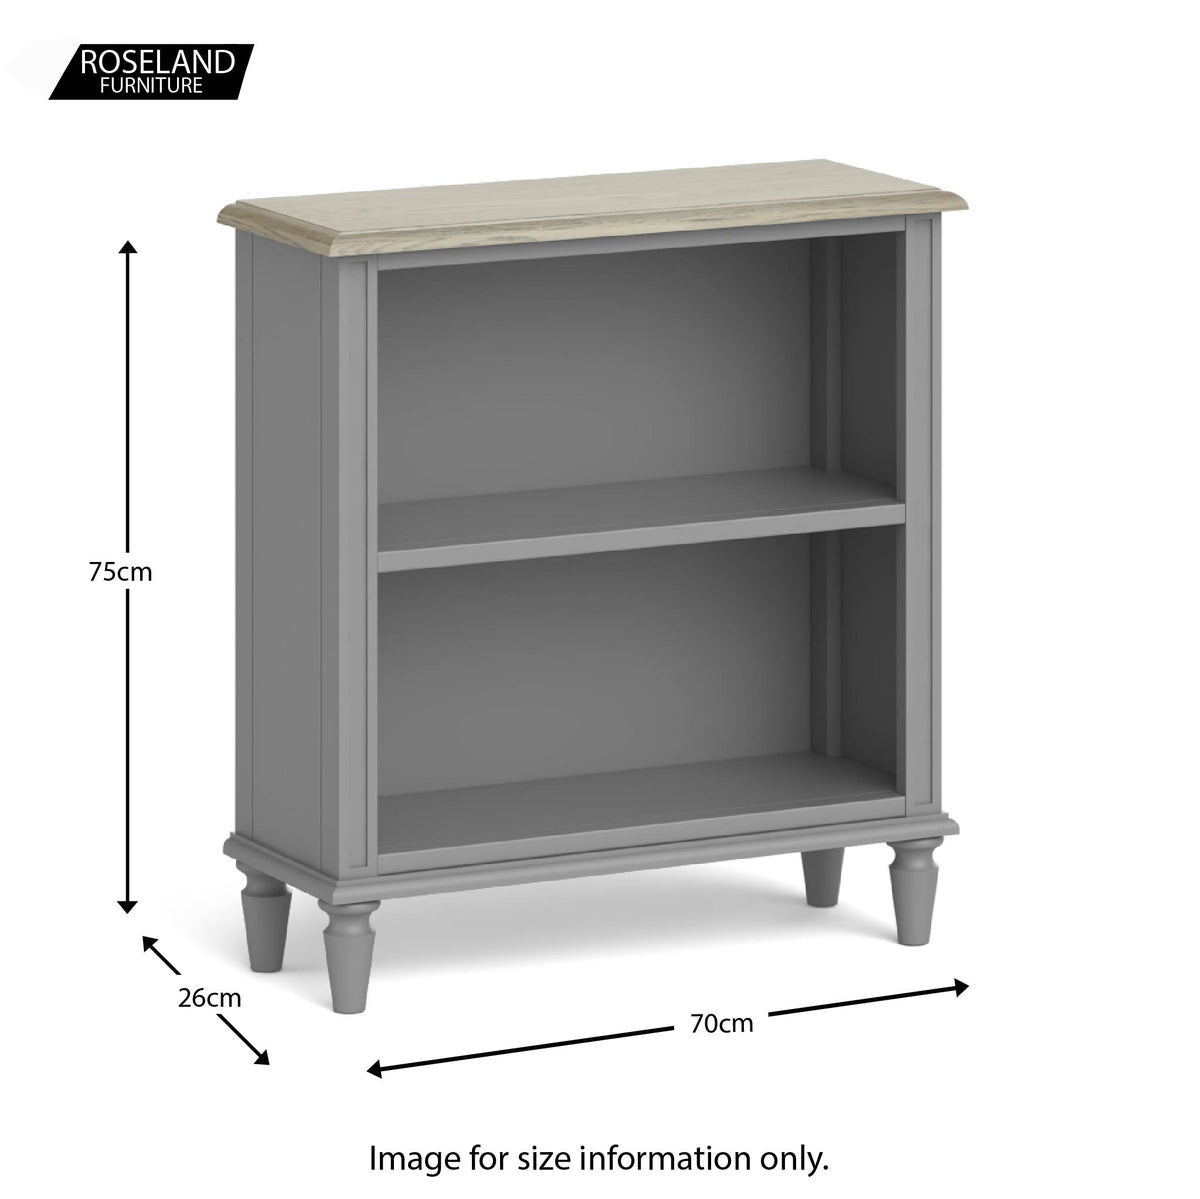 The Mulsanne Grey French Style Slim Bookcase size guide